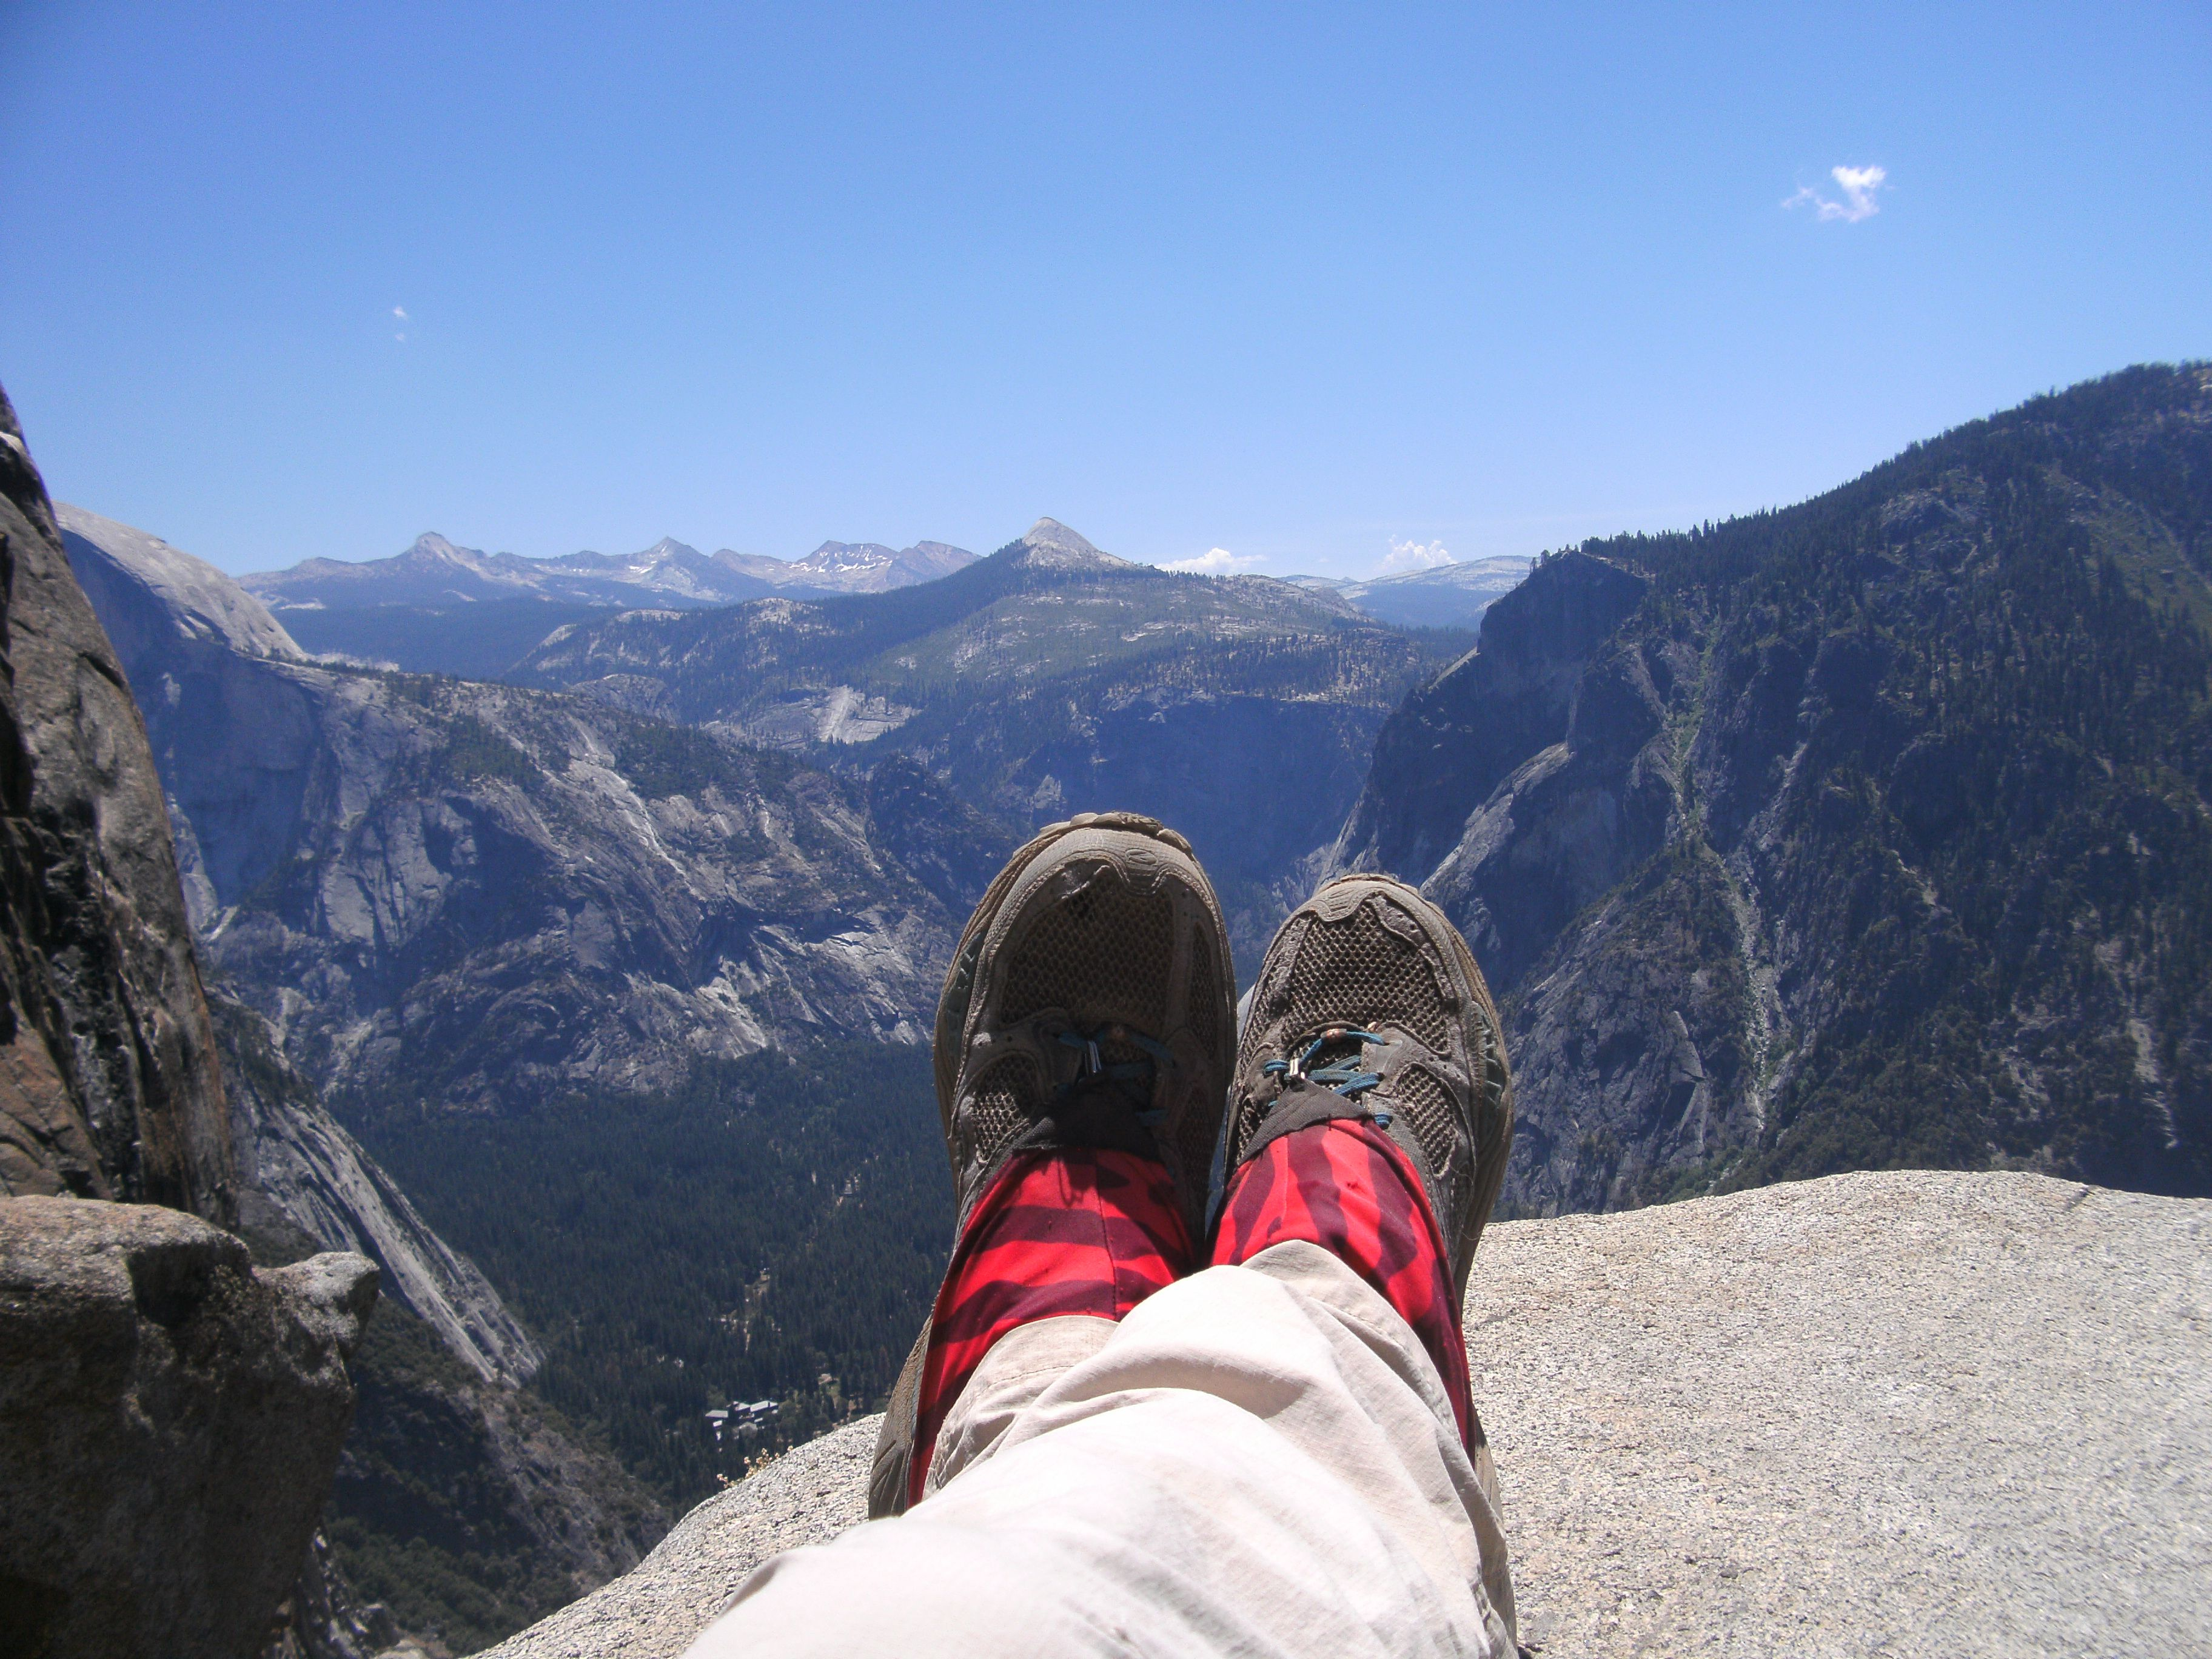 Near the top of Yosemite Falls.  Wow what a view!